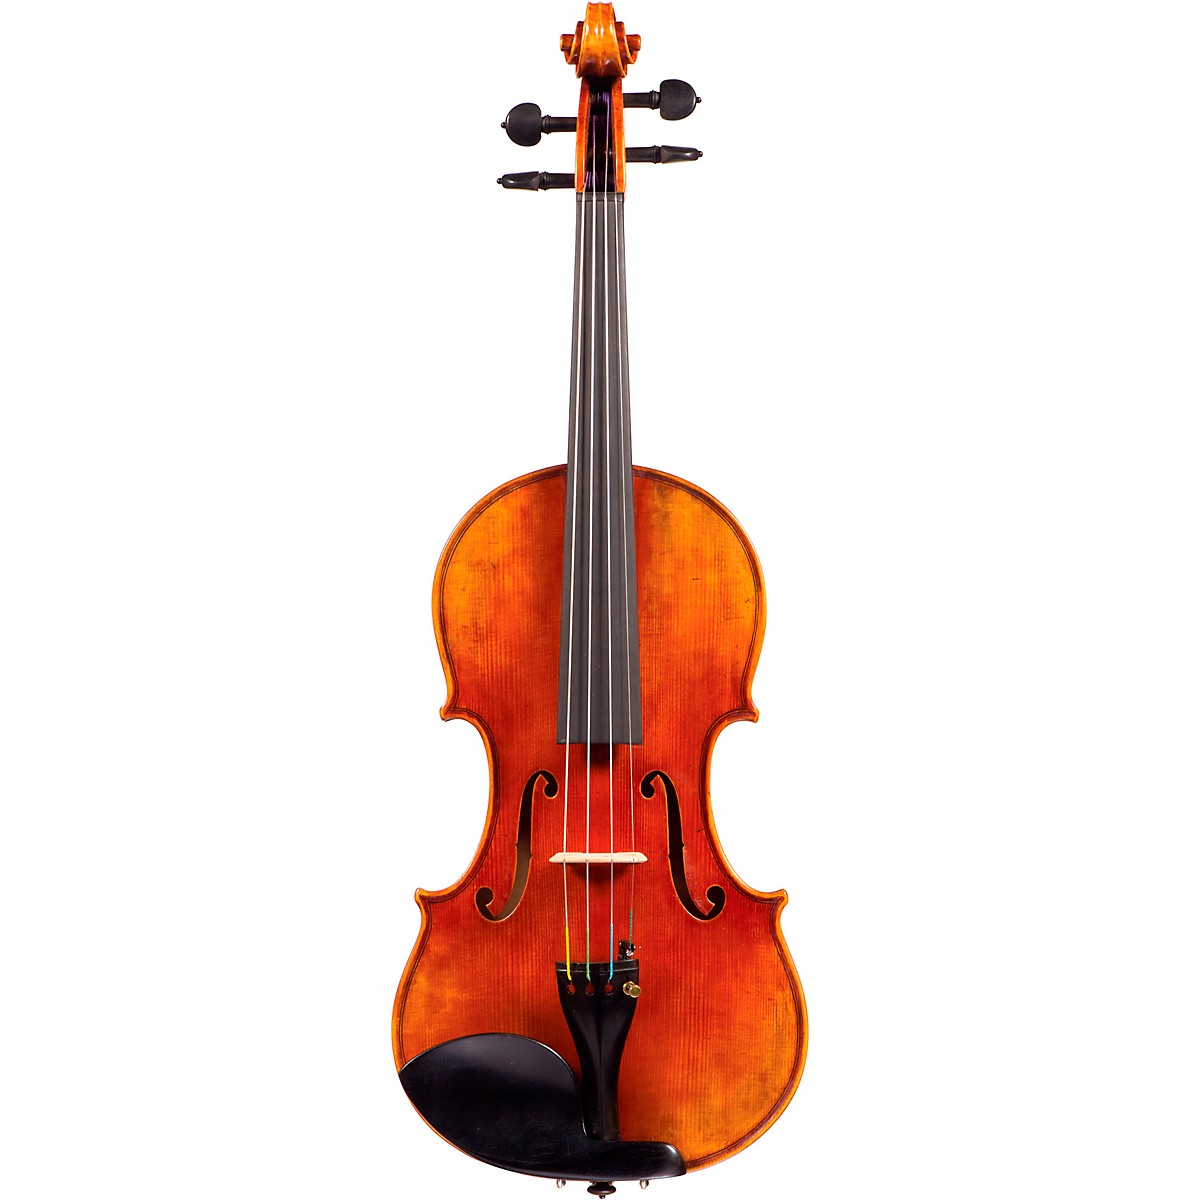 Alessandro A450 Firenze Series Intermediate Violin